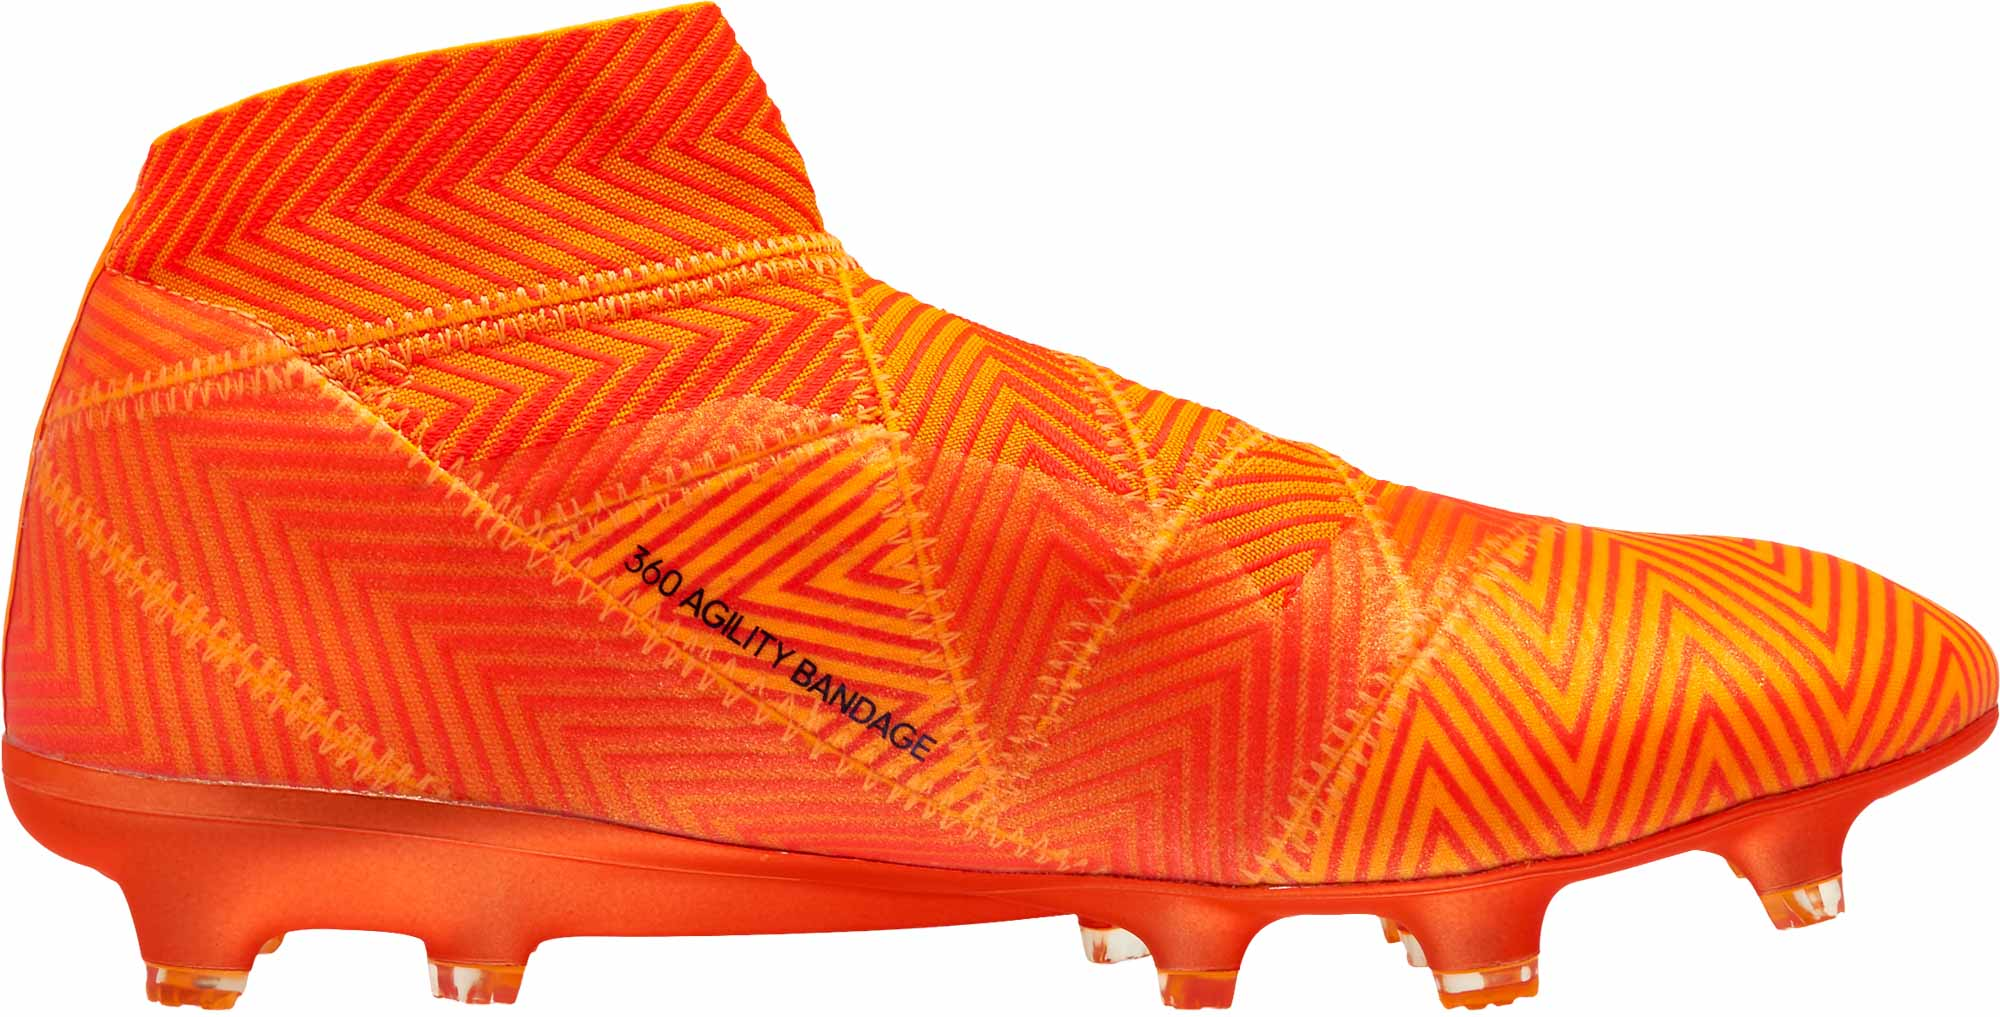 low priced db71b 14a54 adidas Nemeziz 18 FG – ZestBlackSolar Red